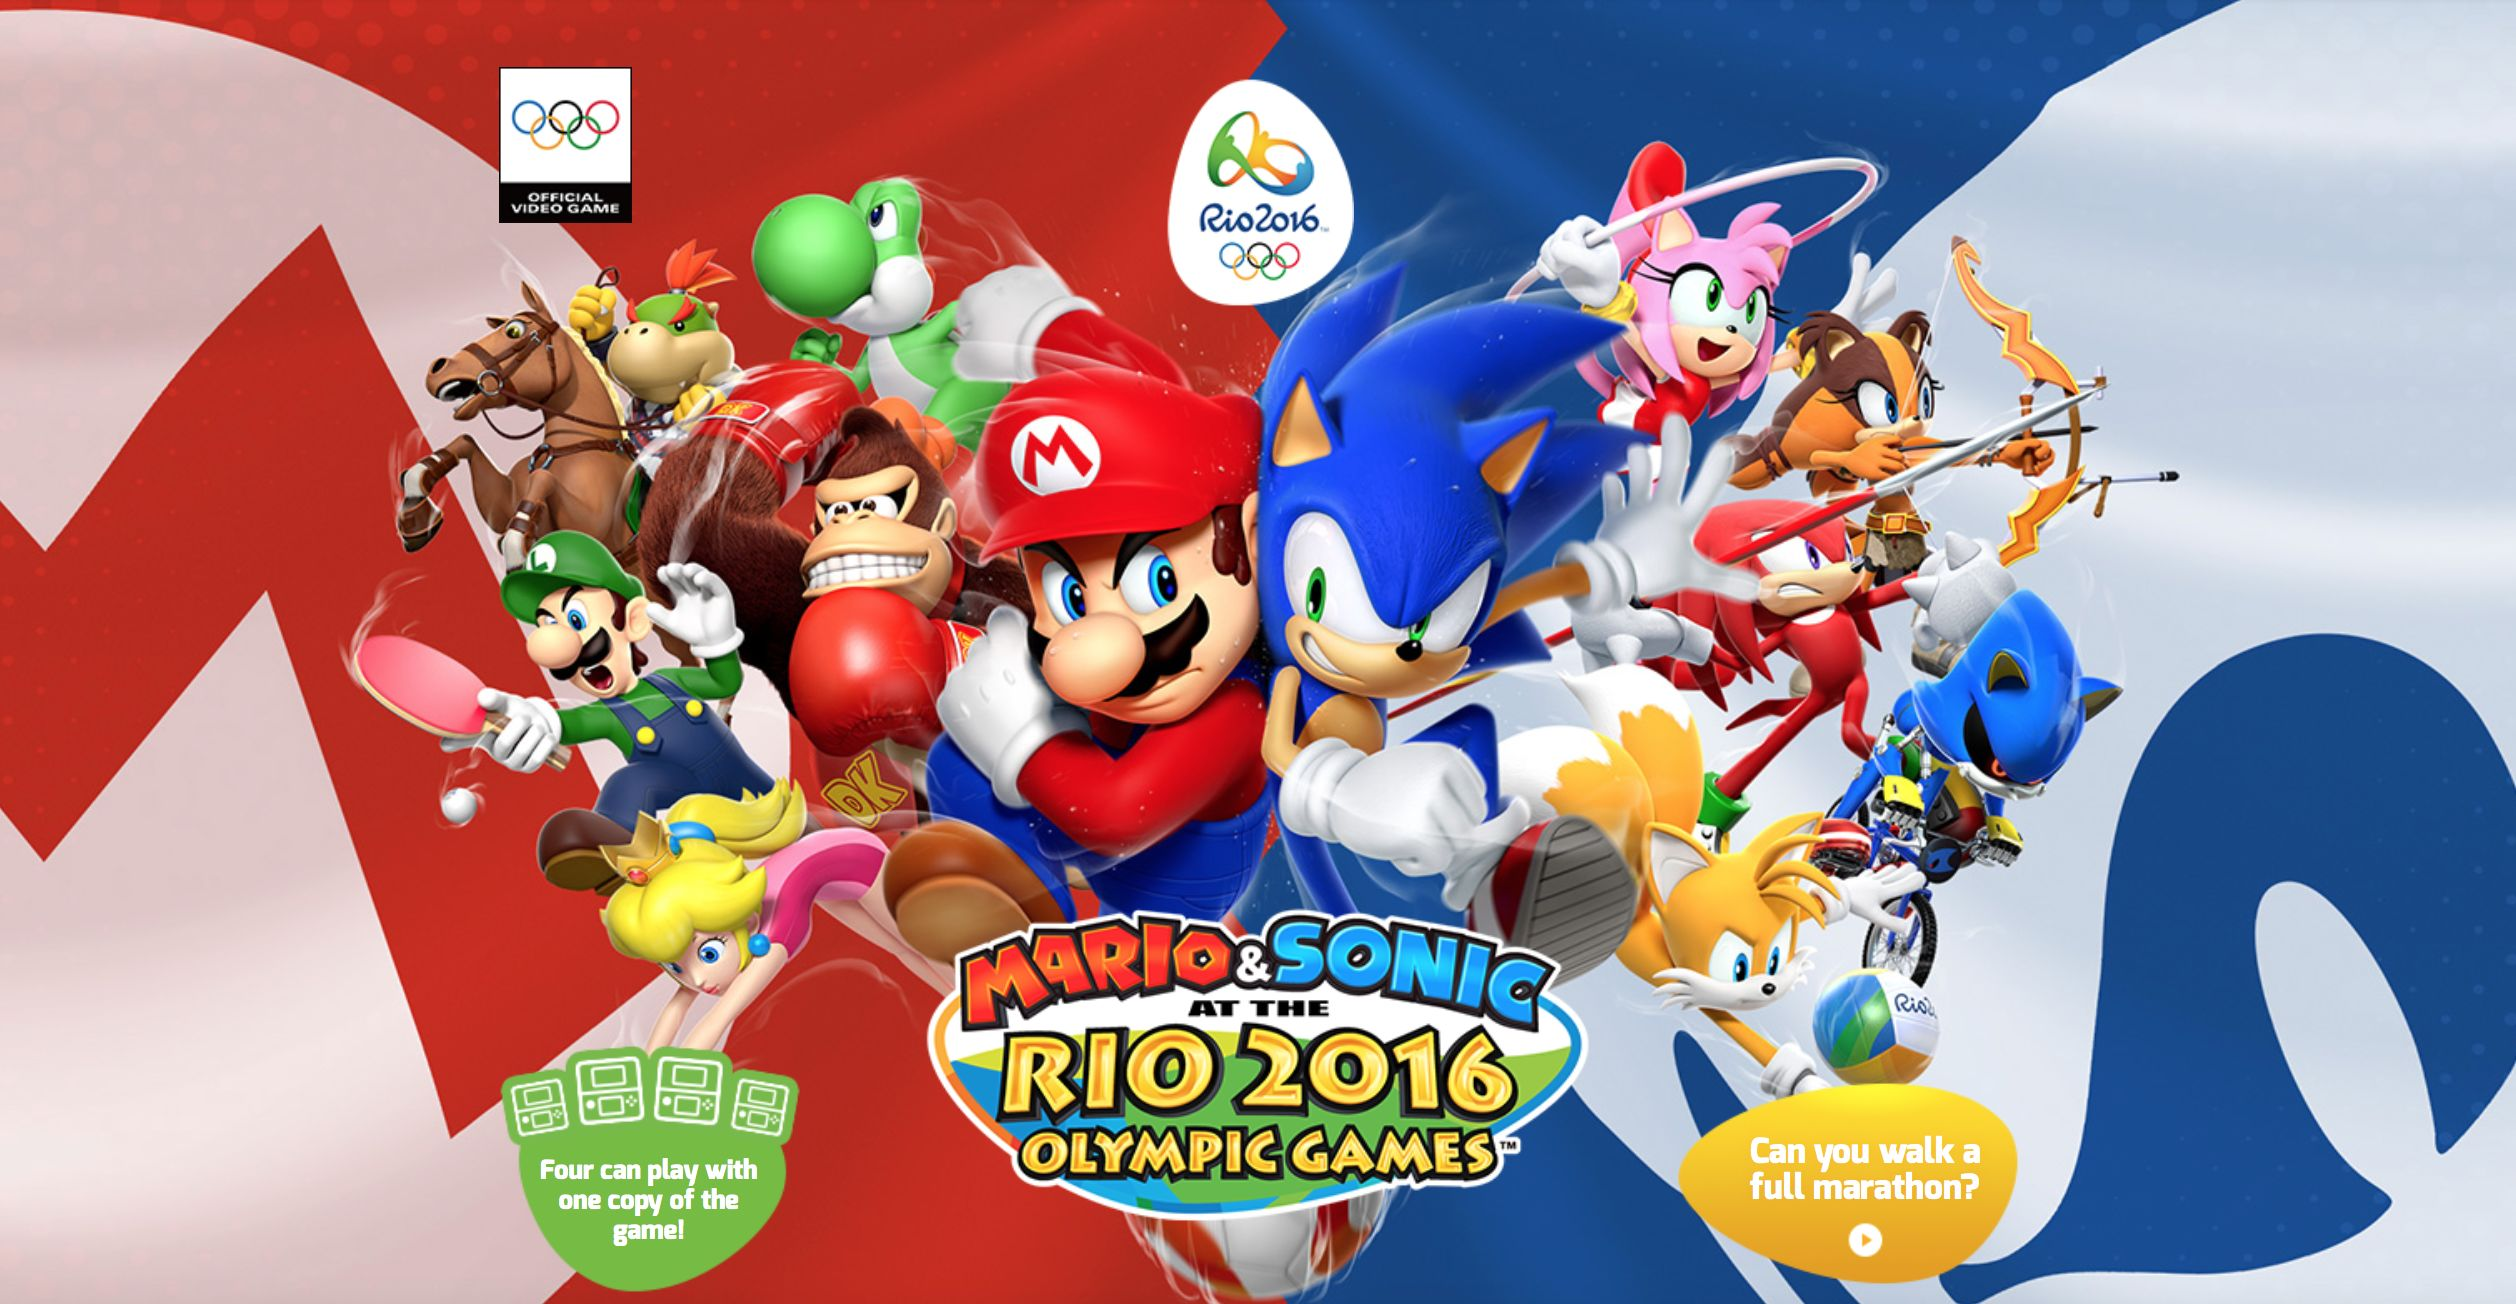 olympic games The olympics of ancient greece featured mainly athletic but also combat and chariot racing events during the olympic games all struggles among the participating city-states were postponed.